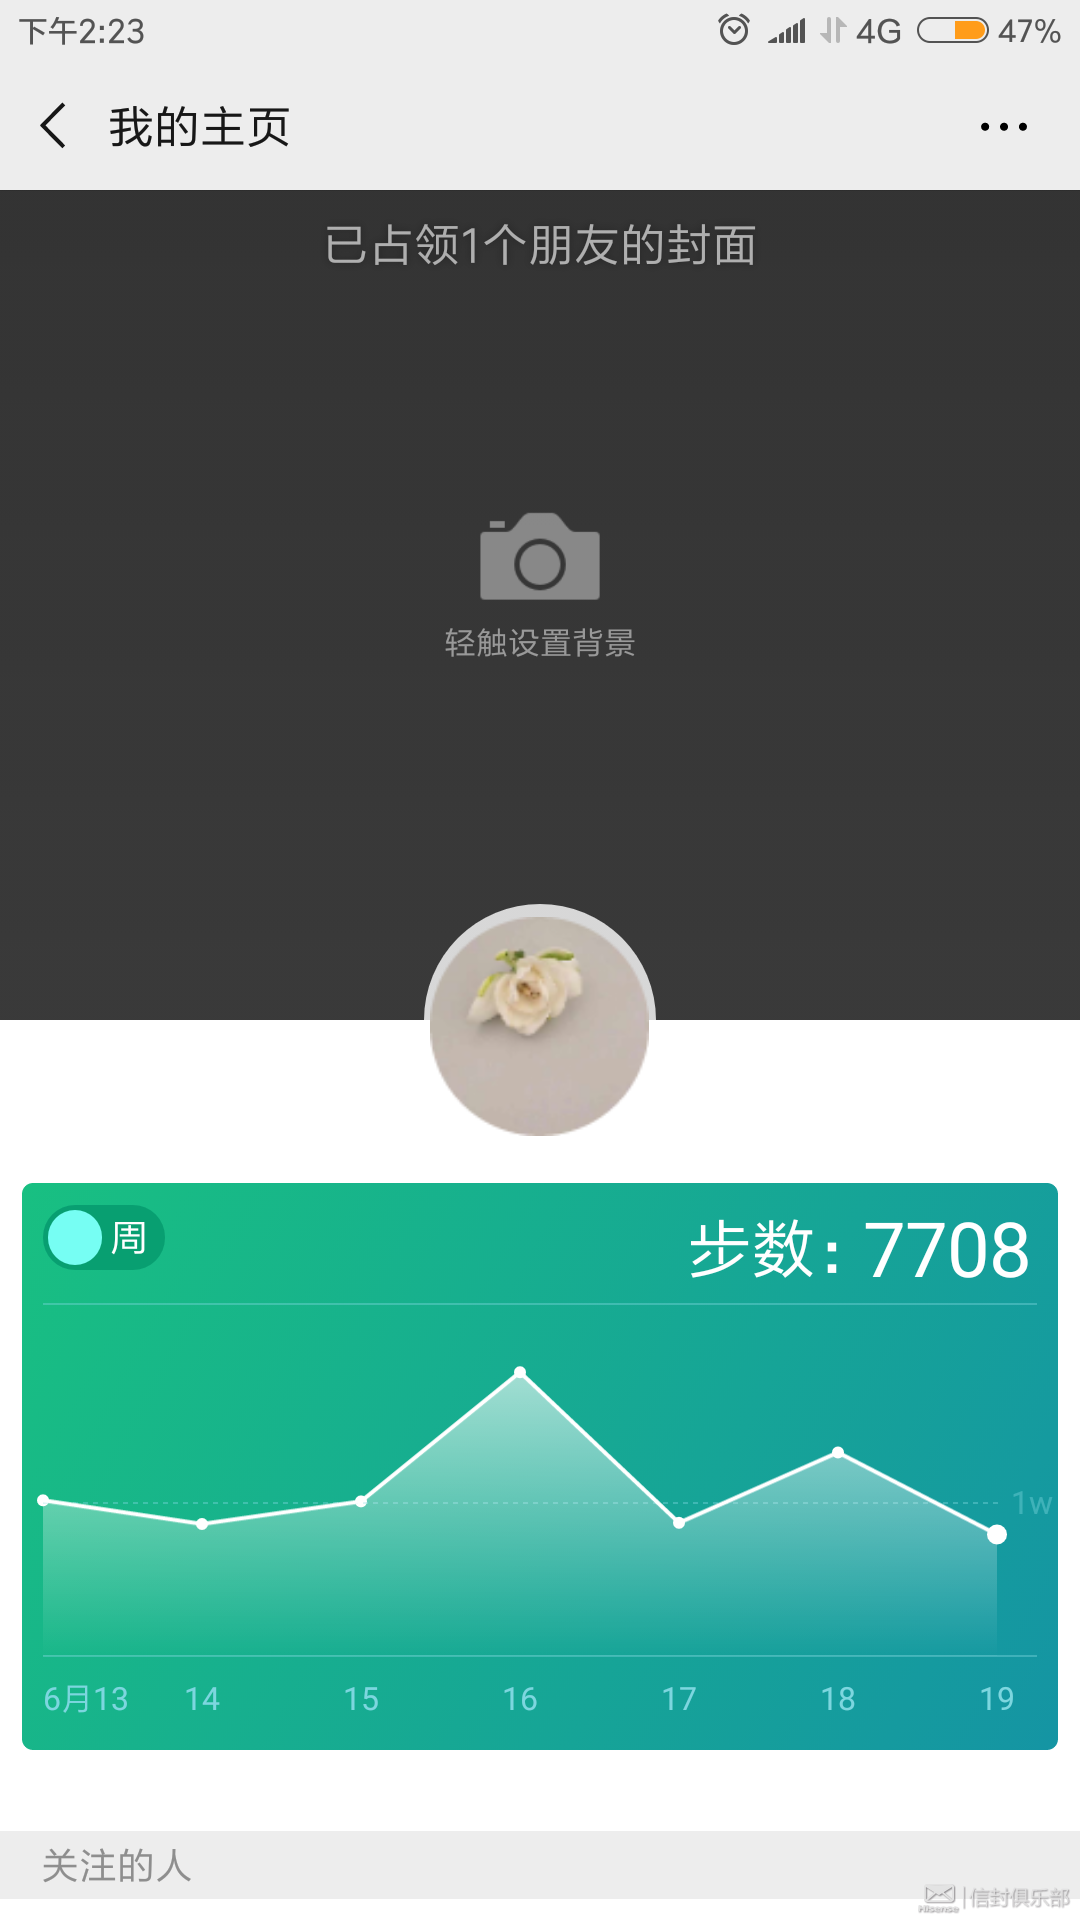 Screenshot_2019-06-19-14-23-17-571_com.tencent.mm.png